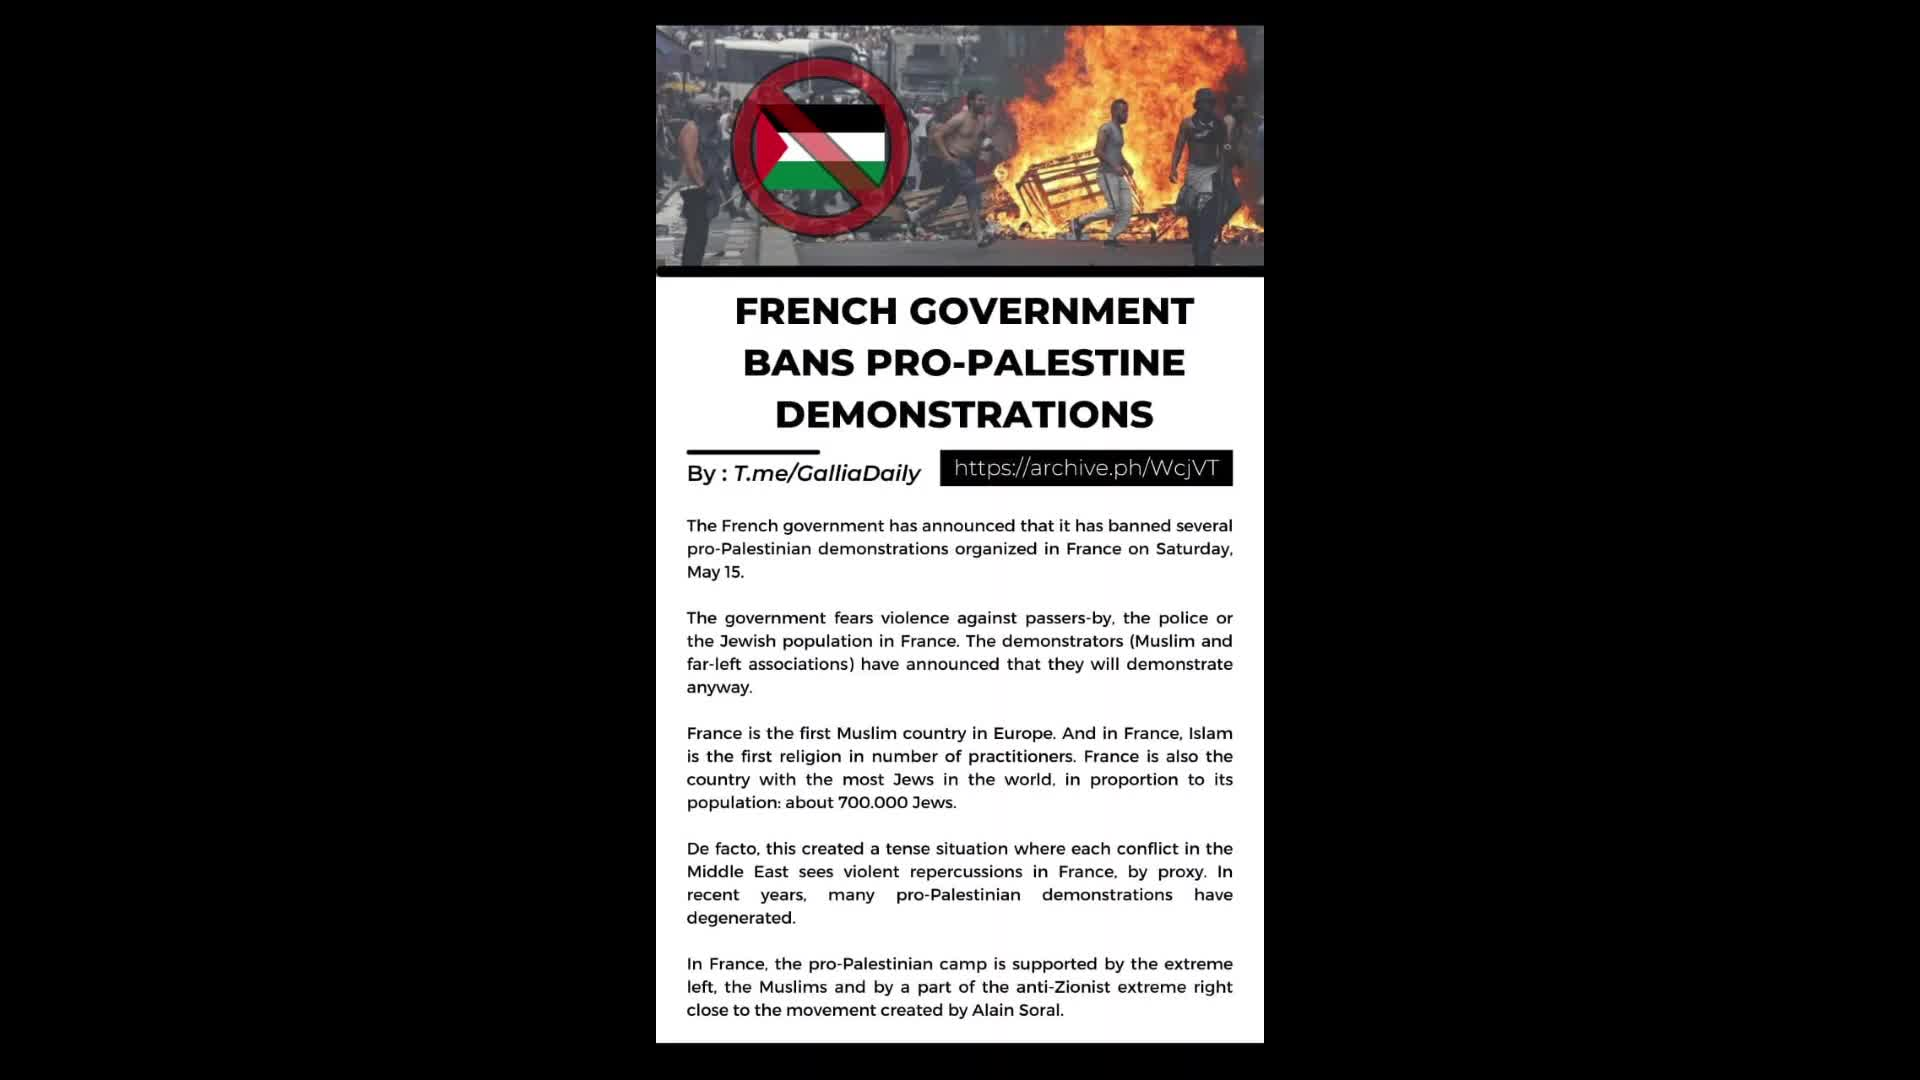 FRENCH GOVERNMENT BANS PRO-PALESTINE DEMONSTRATIONS